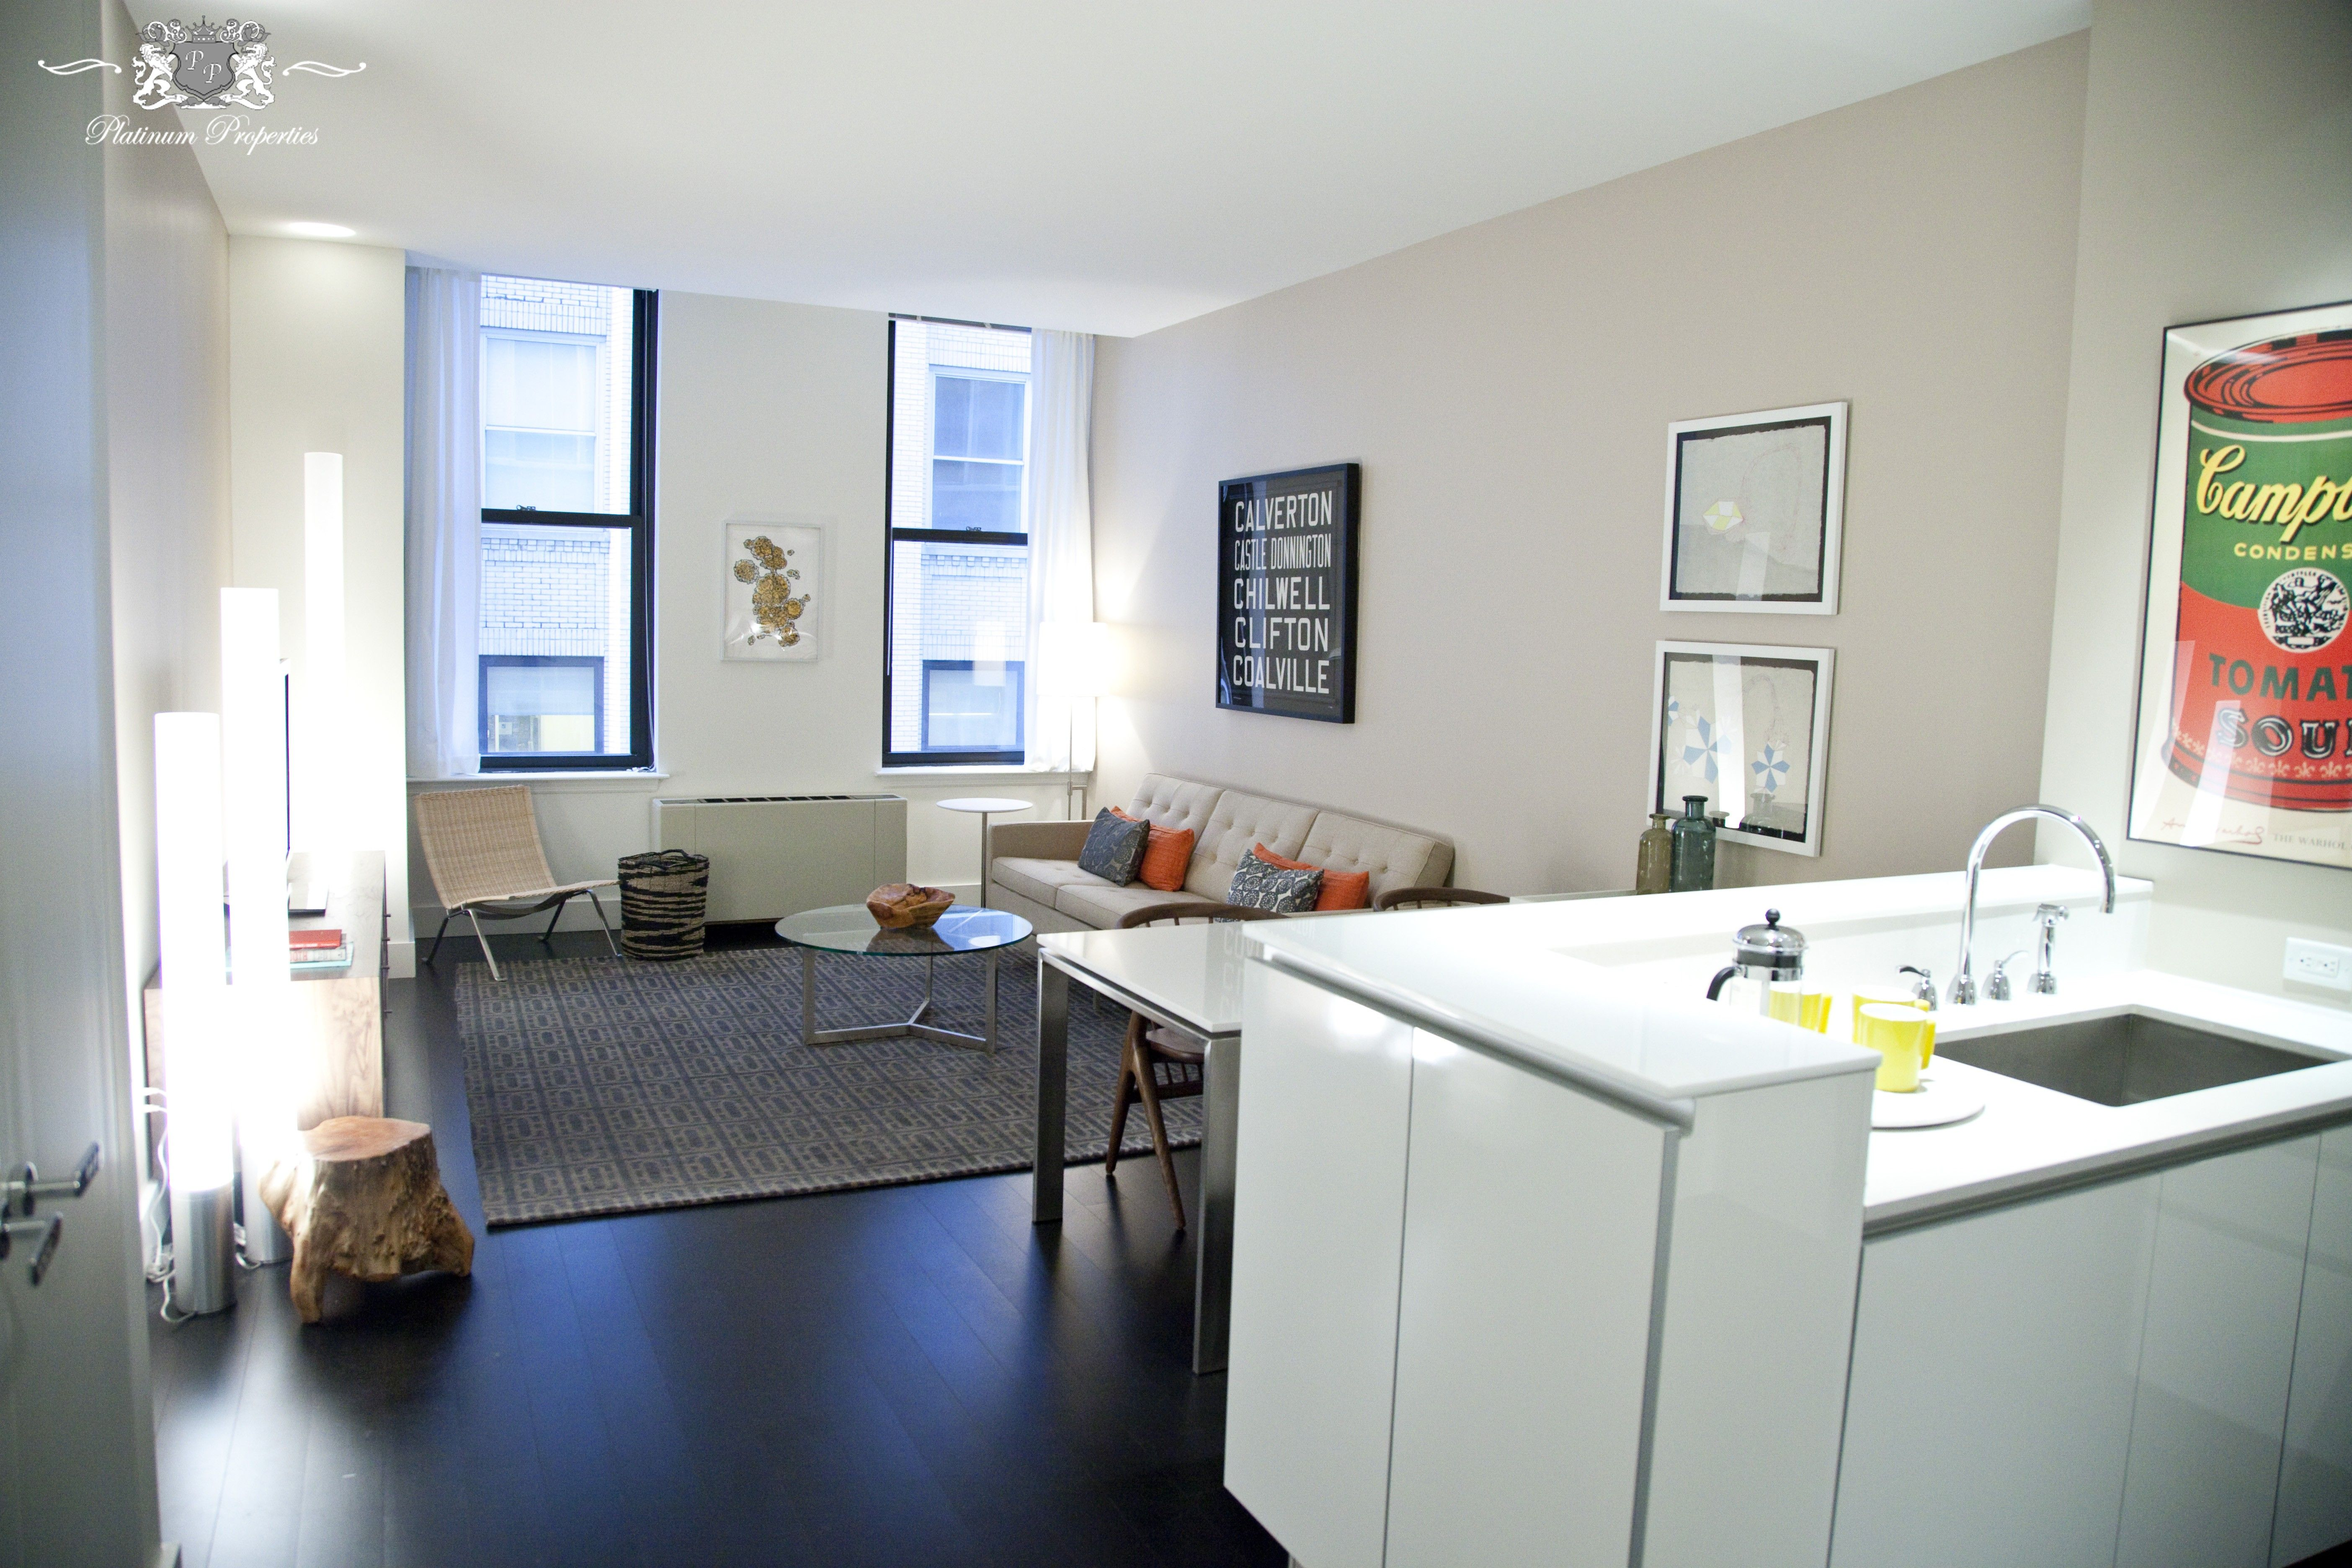 Check Out This Apartment Https Www Zumper Com Rentals 4886464 2 Bedroom Financial District New York Apartments For Rent Apartment Renting A House